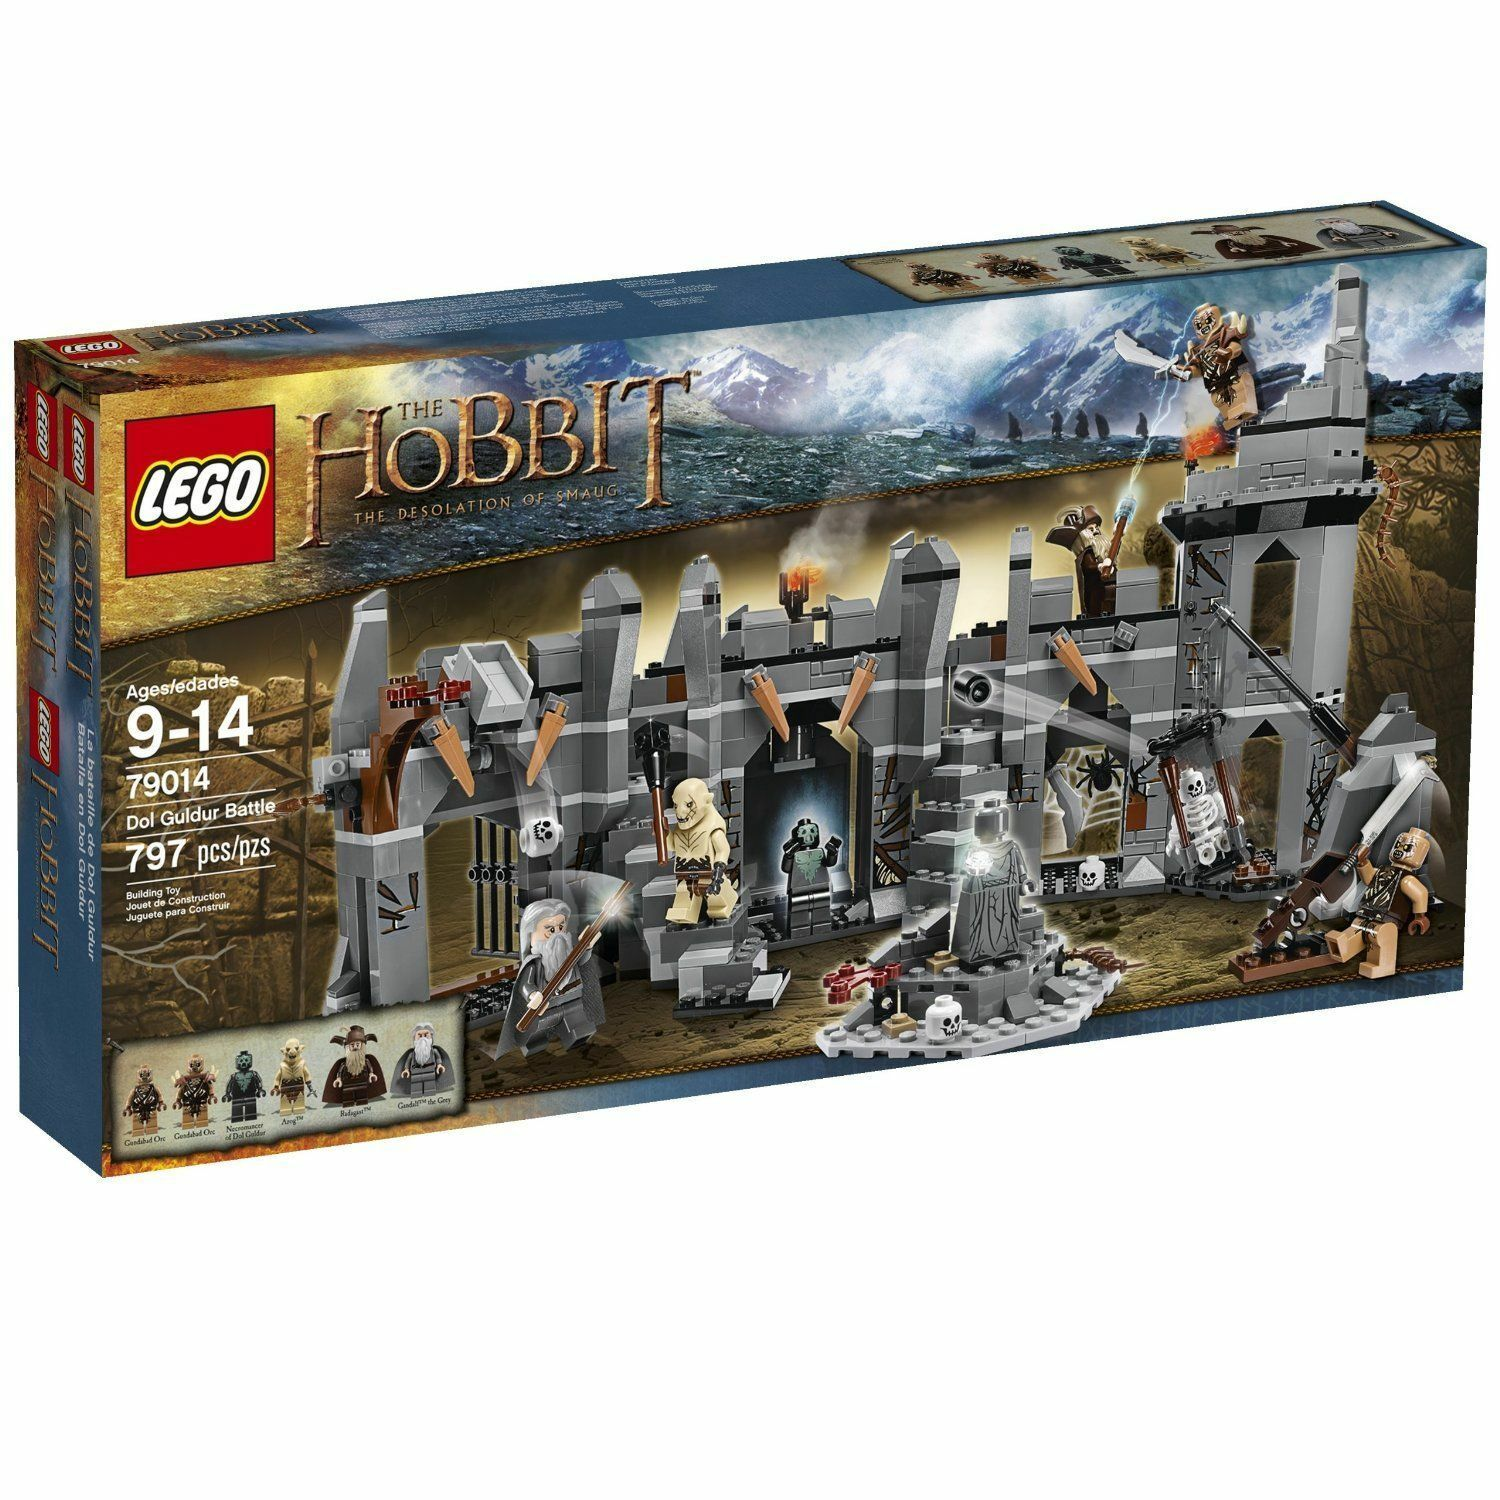 LEGO 79014 The Hobbit Dol Guldur Battle